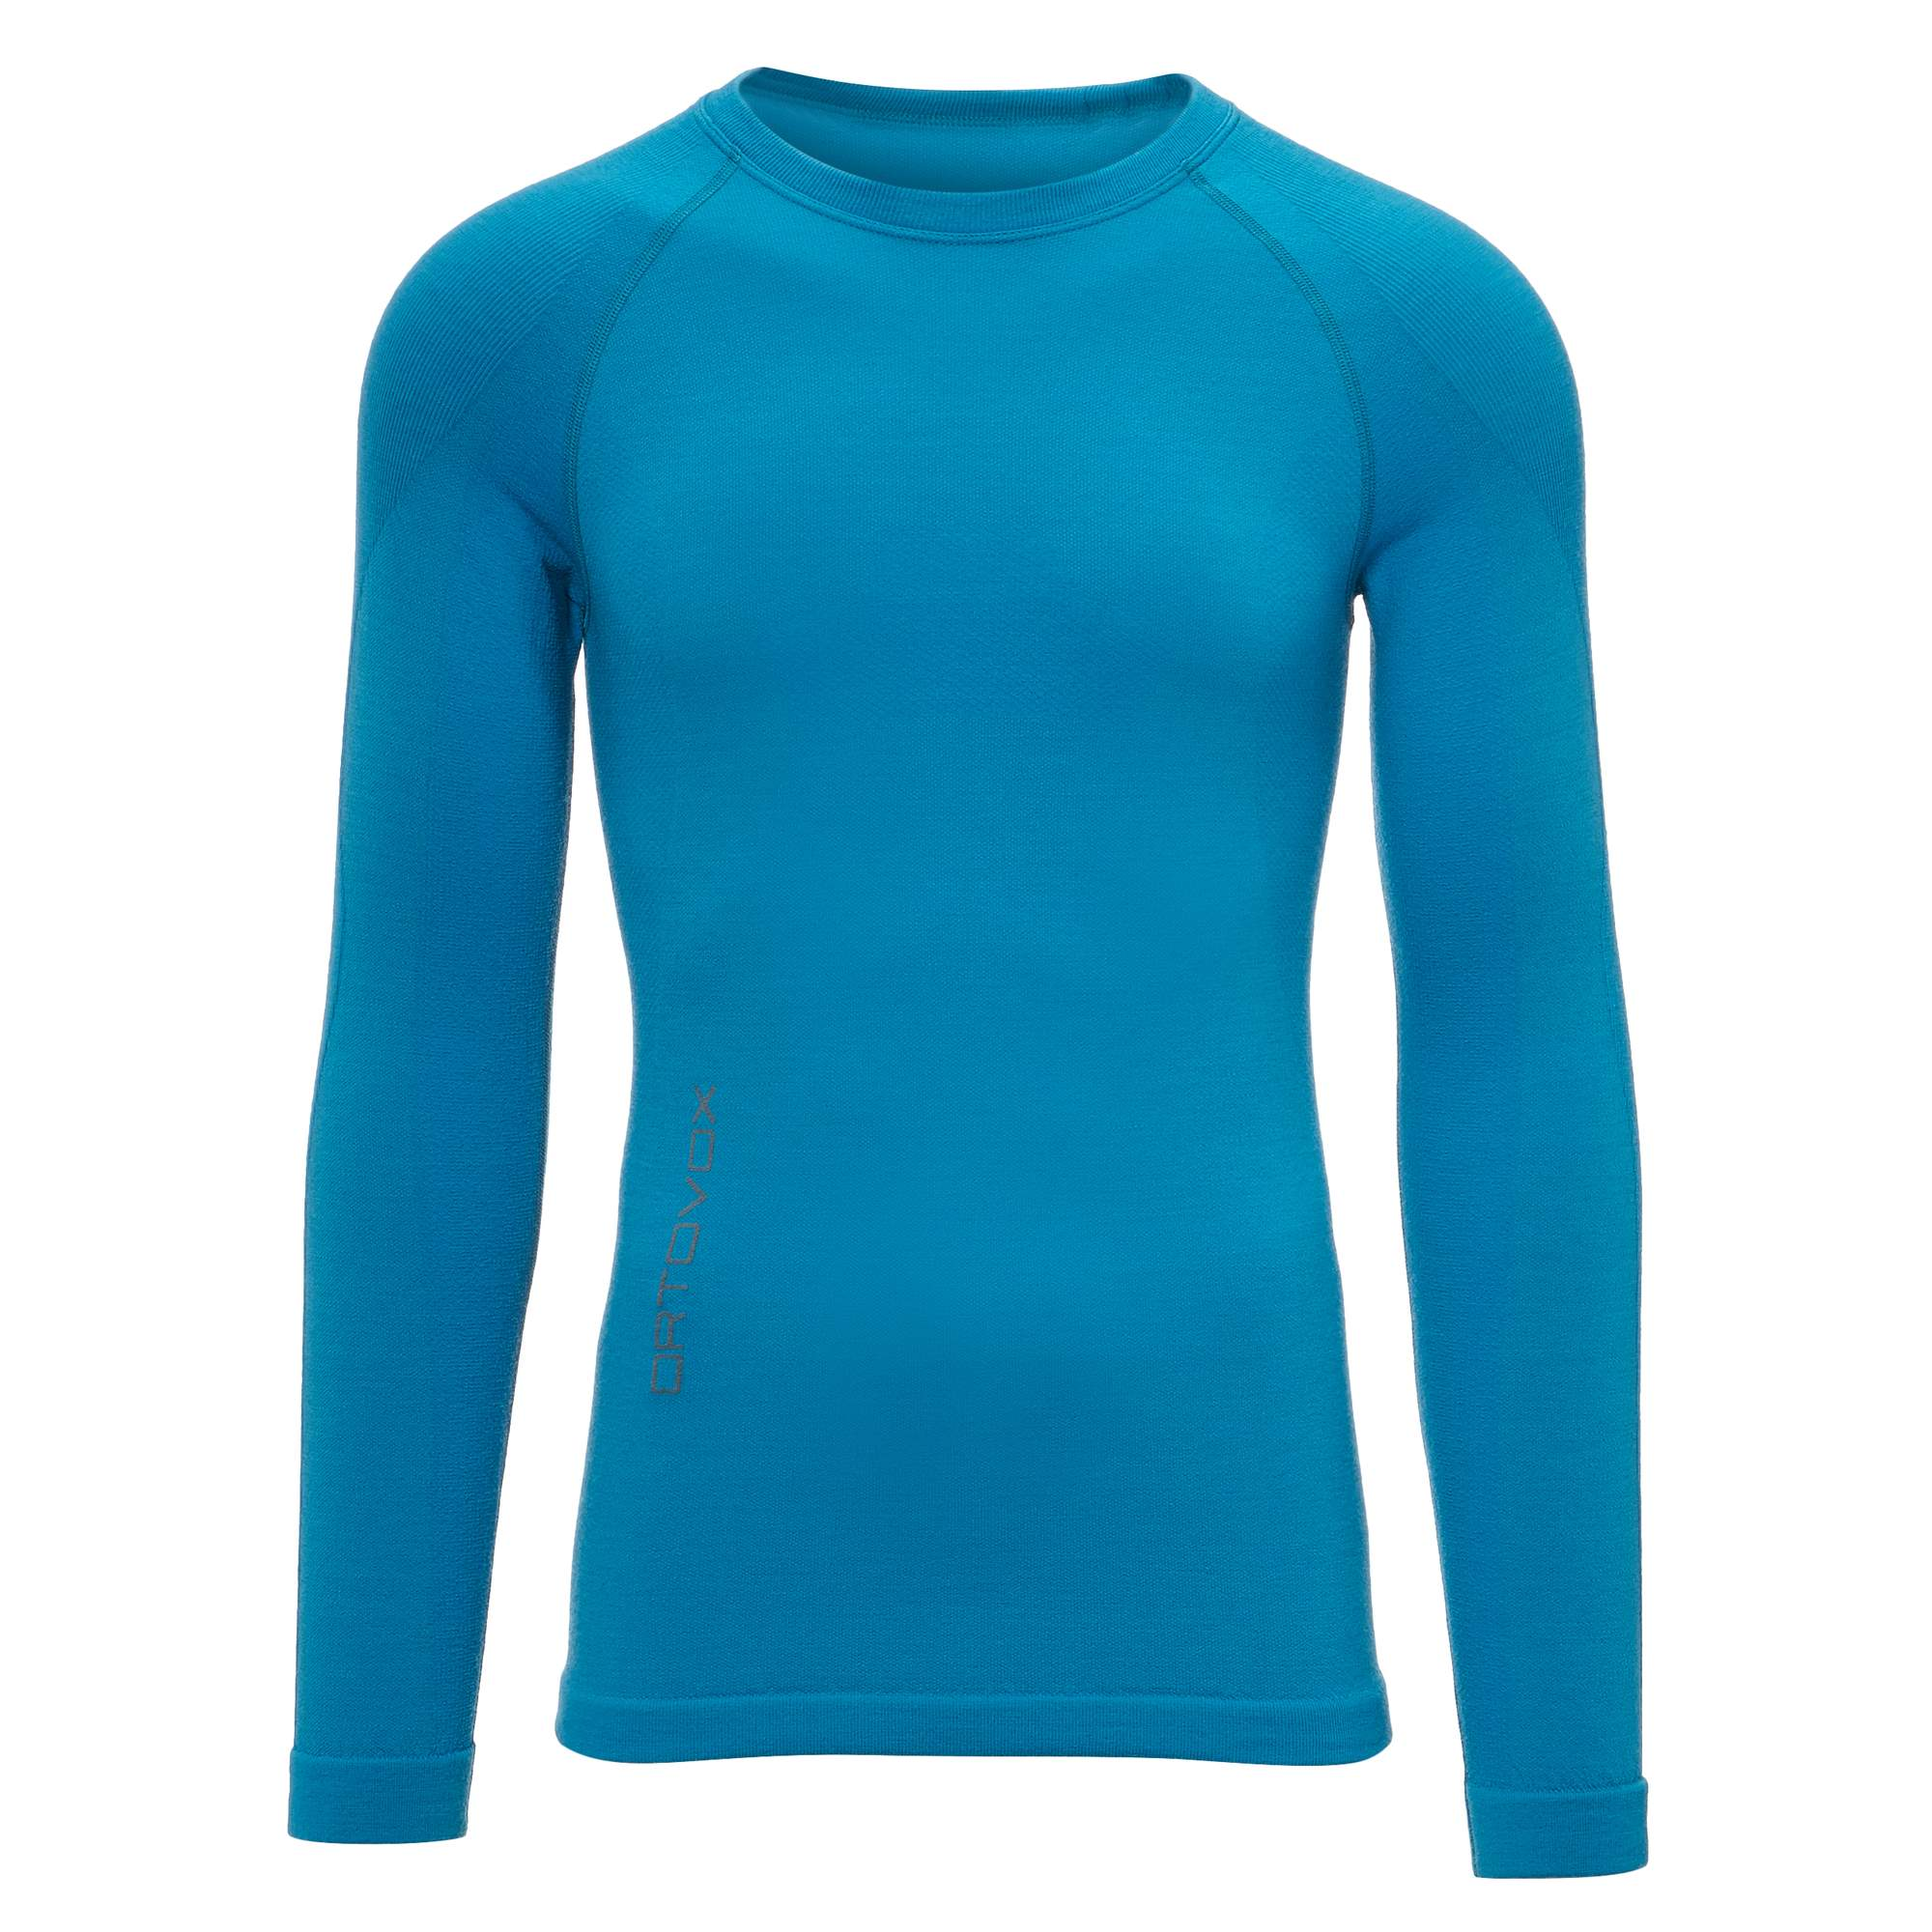 230 Competition Long Sleeve